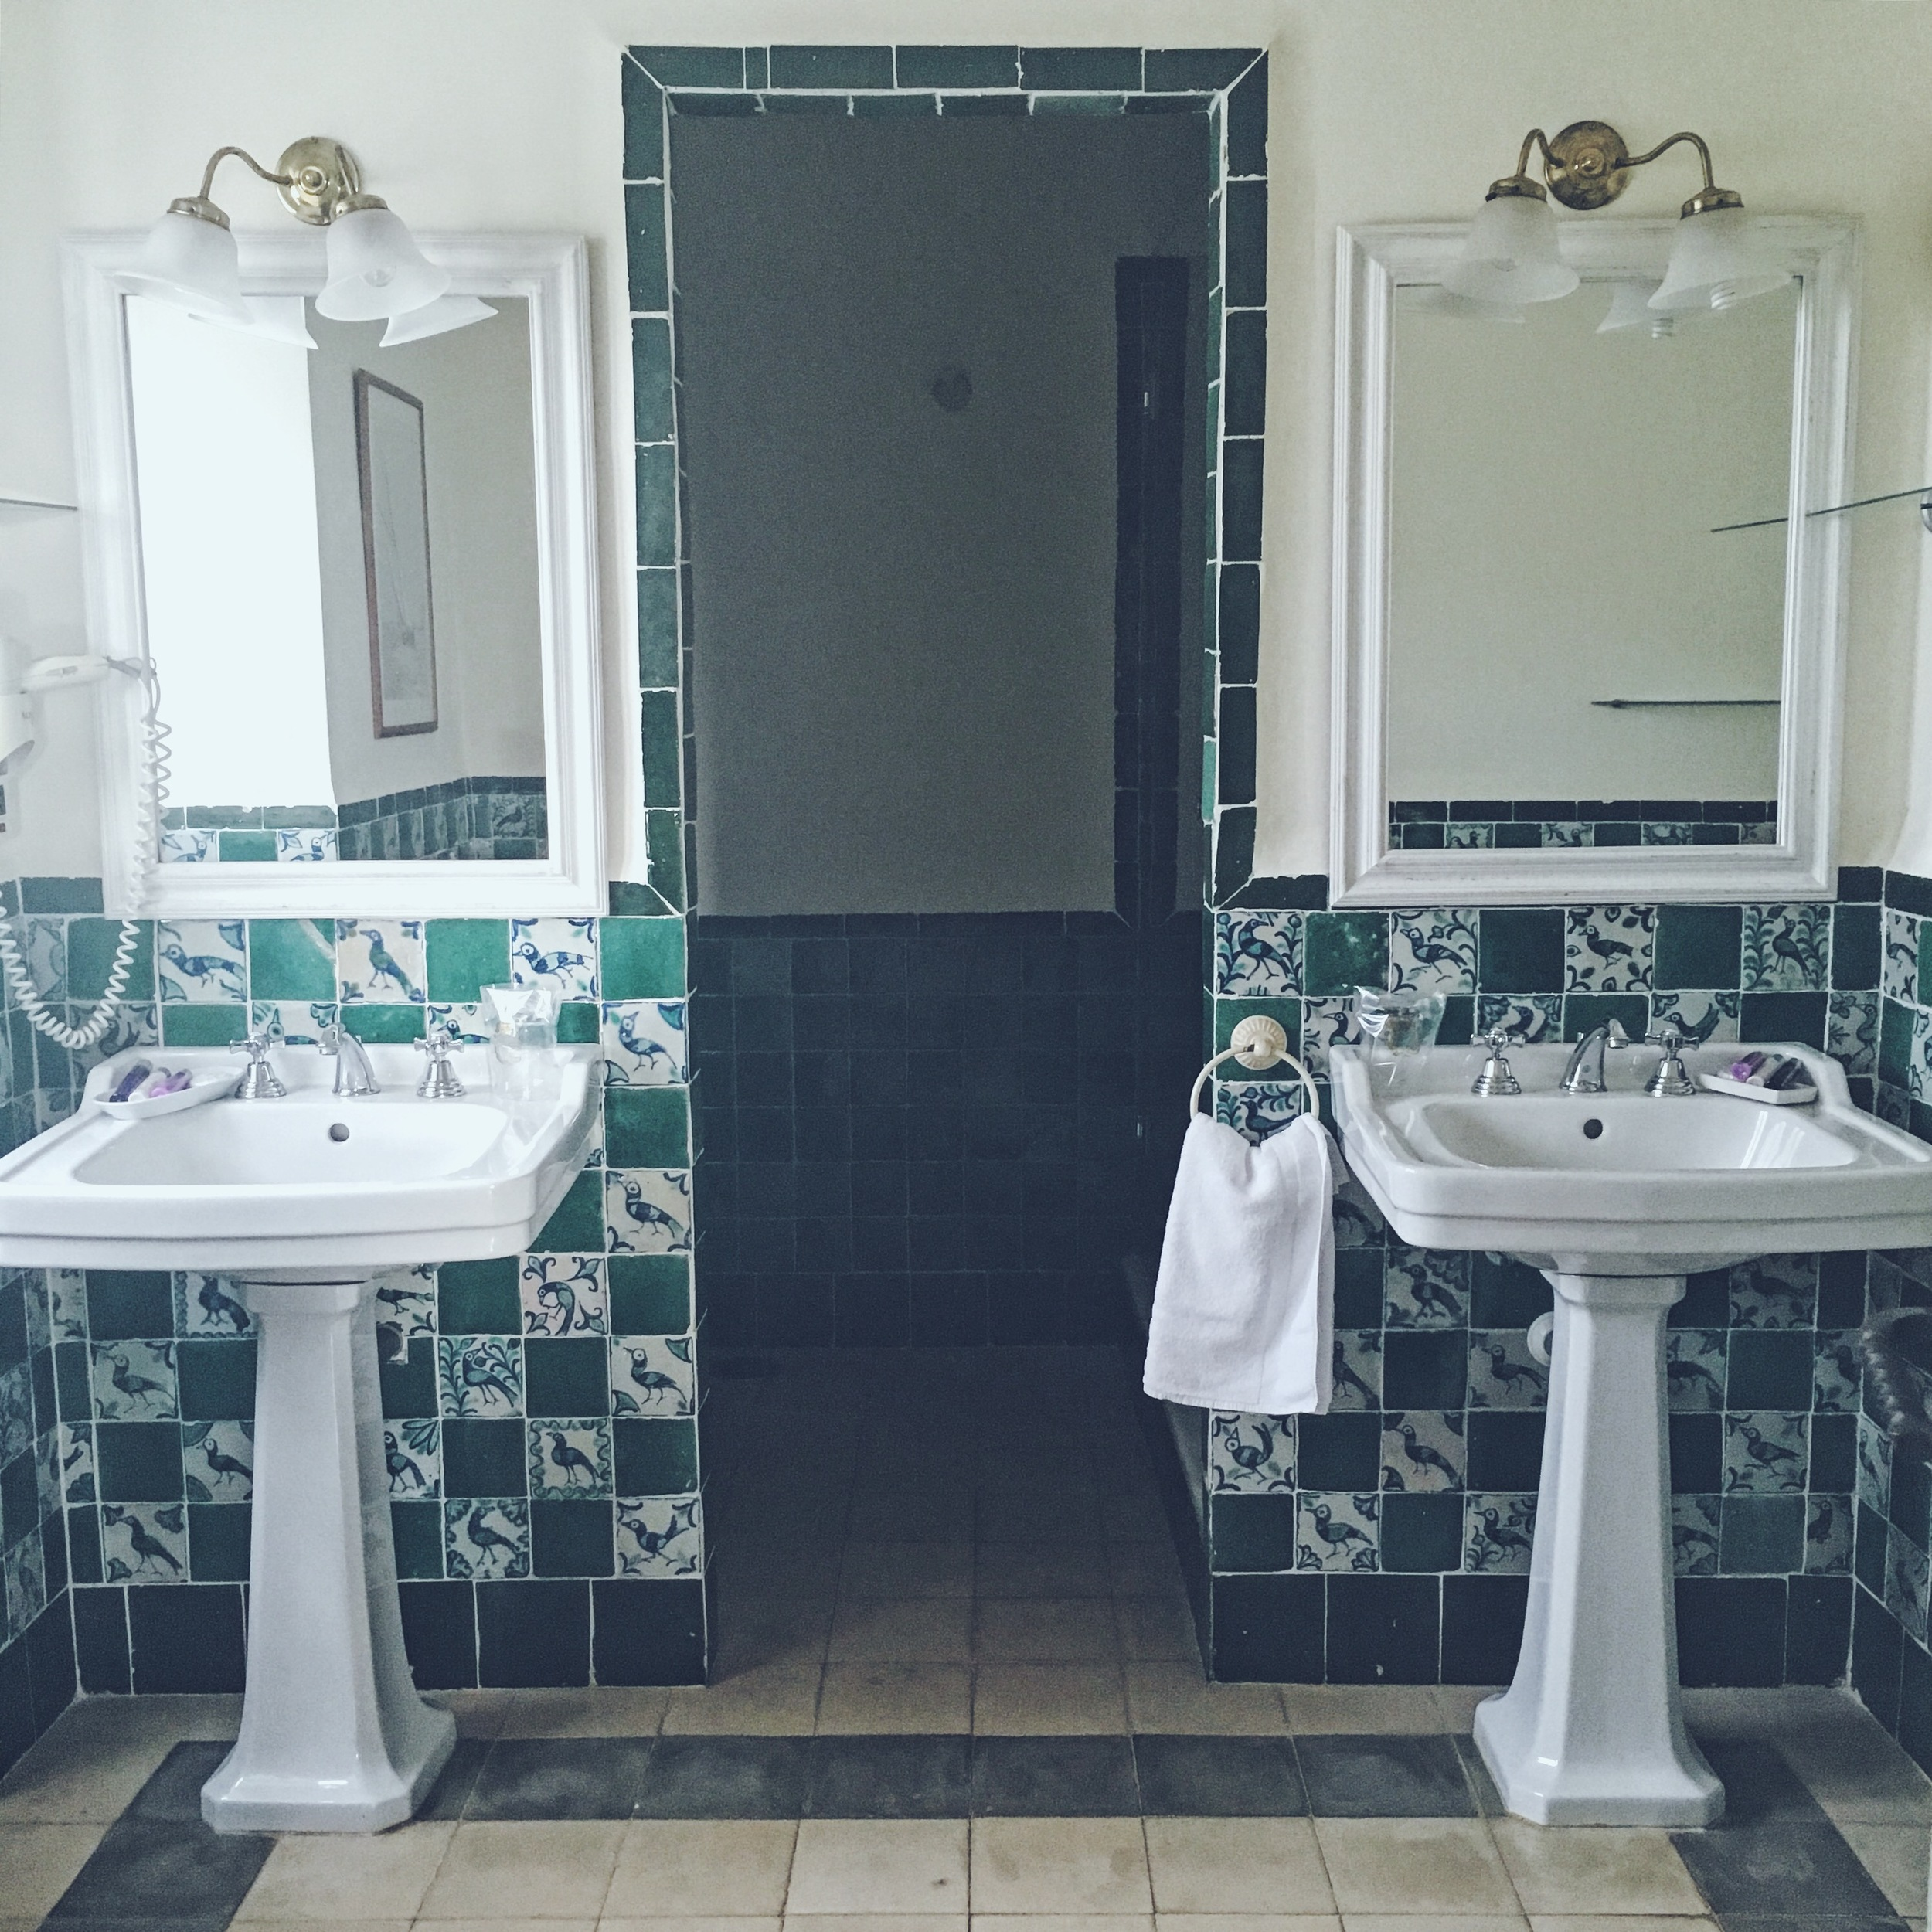 Castello De Santa Bathroom - how beautiful is the white porcelain & bottle green tiles.